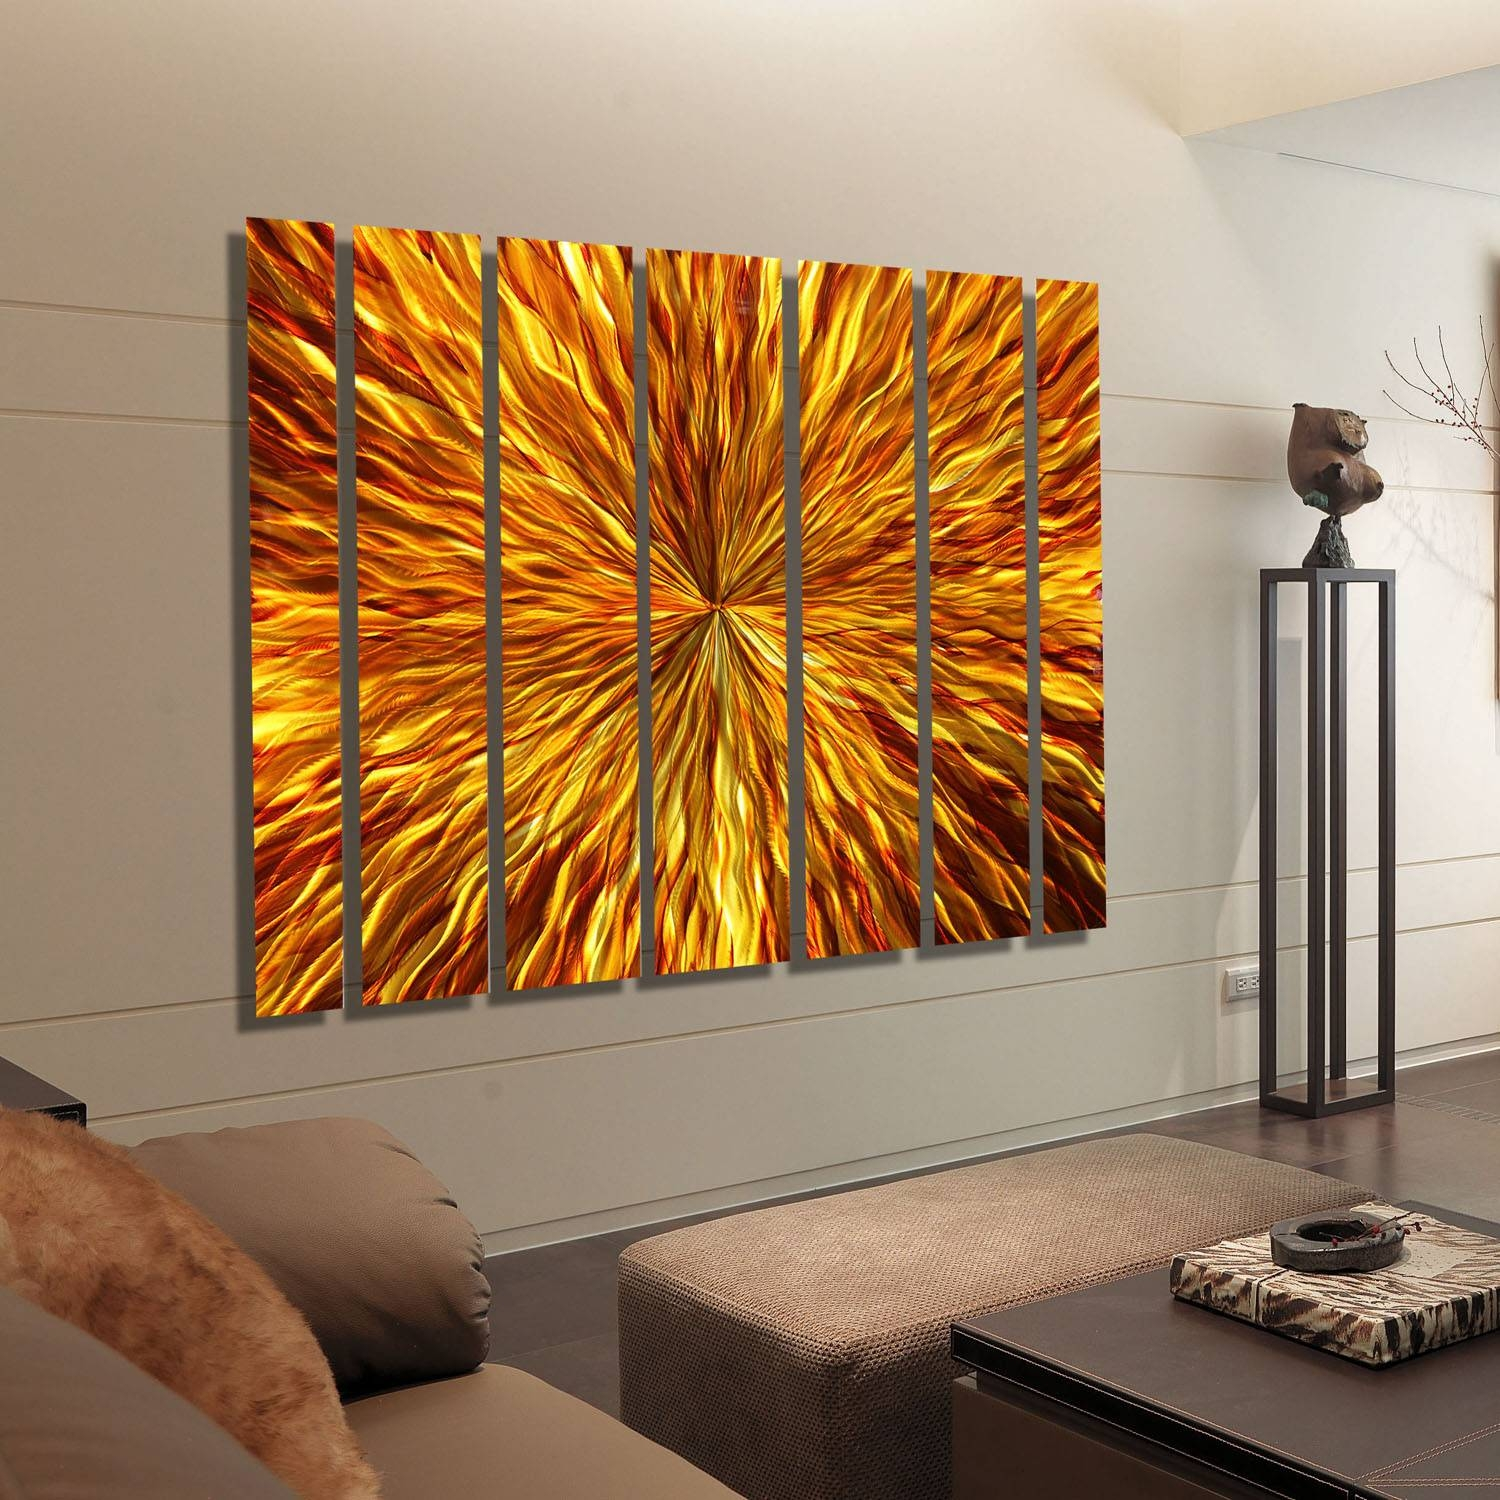 Amber Vortex Xl – Extra Large Modern Metal Wall Artjon Allen Within Most Current Rectangular Metal Wall Art (View 2 of 20)